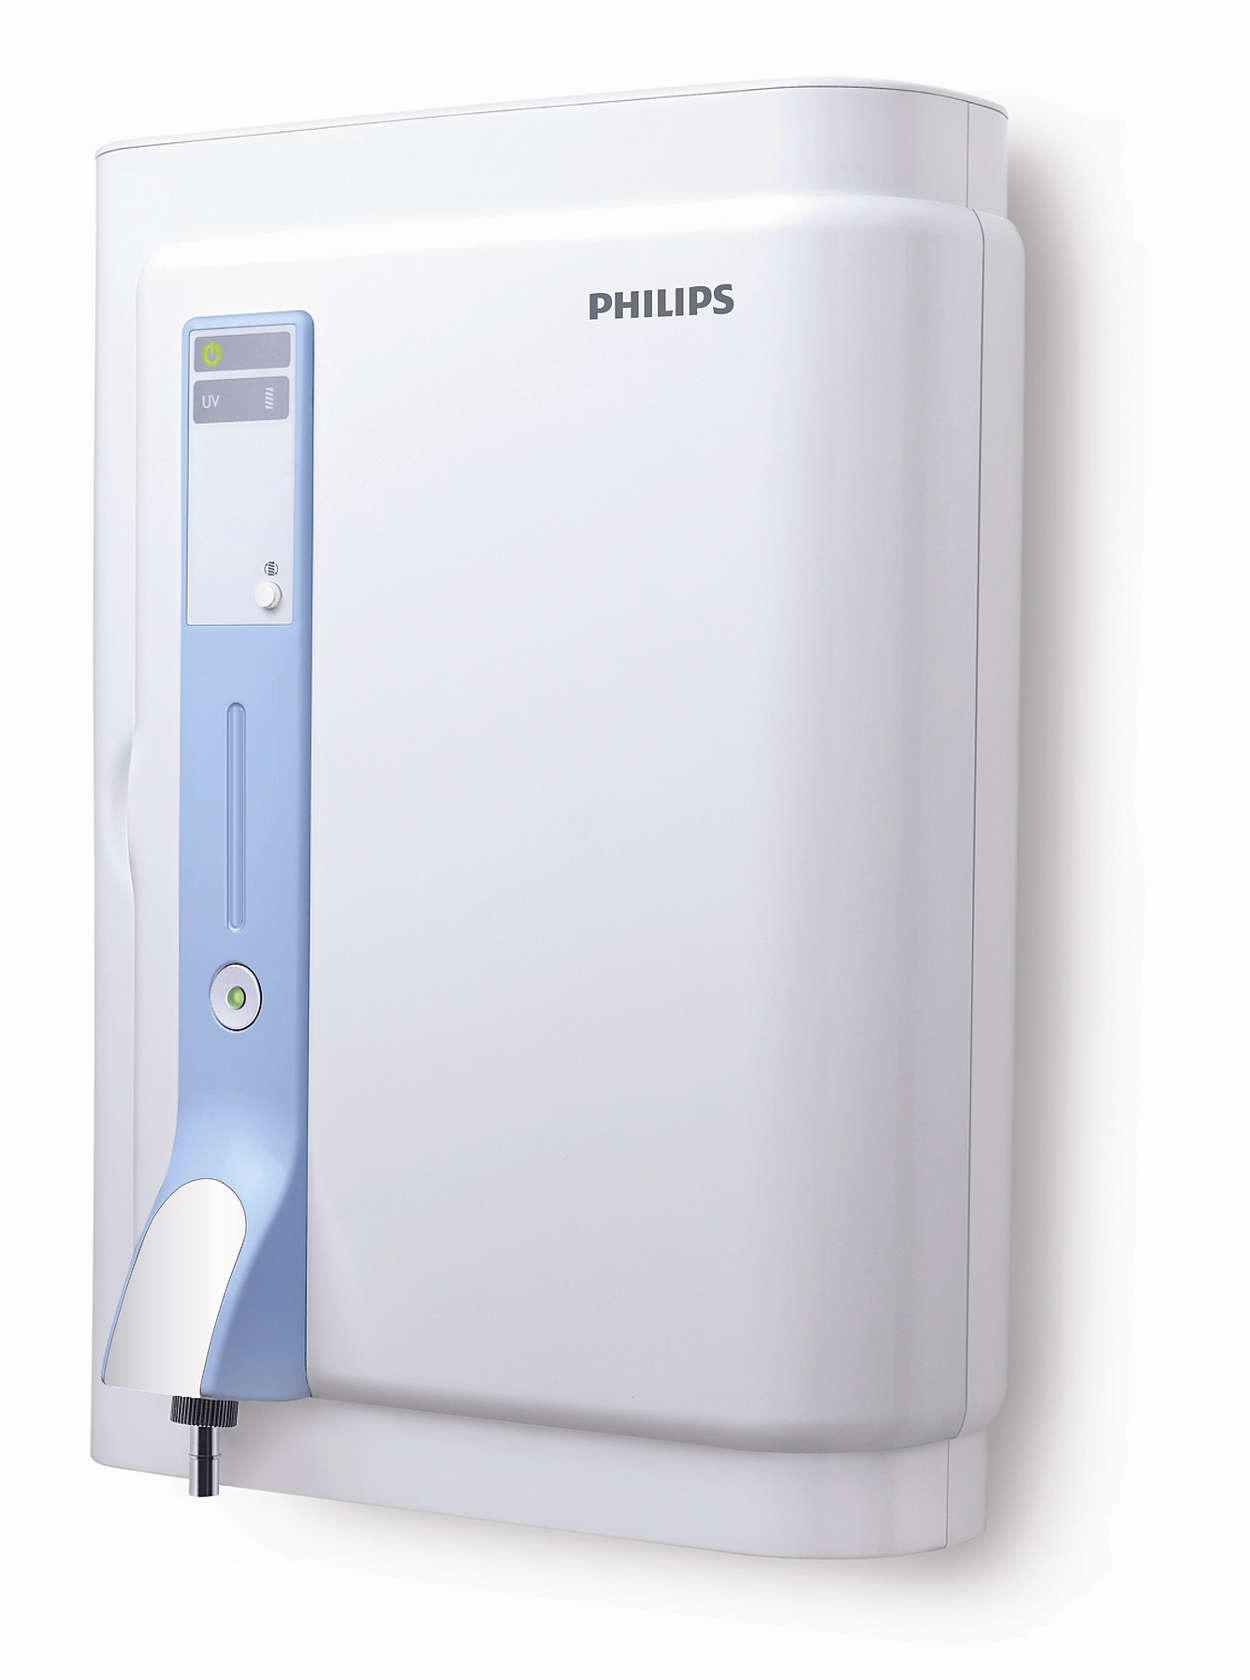 Water Purifier For Home Uv Water Purifier Wp3889 01 Philips